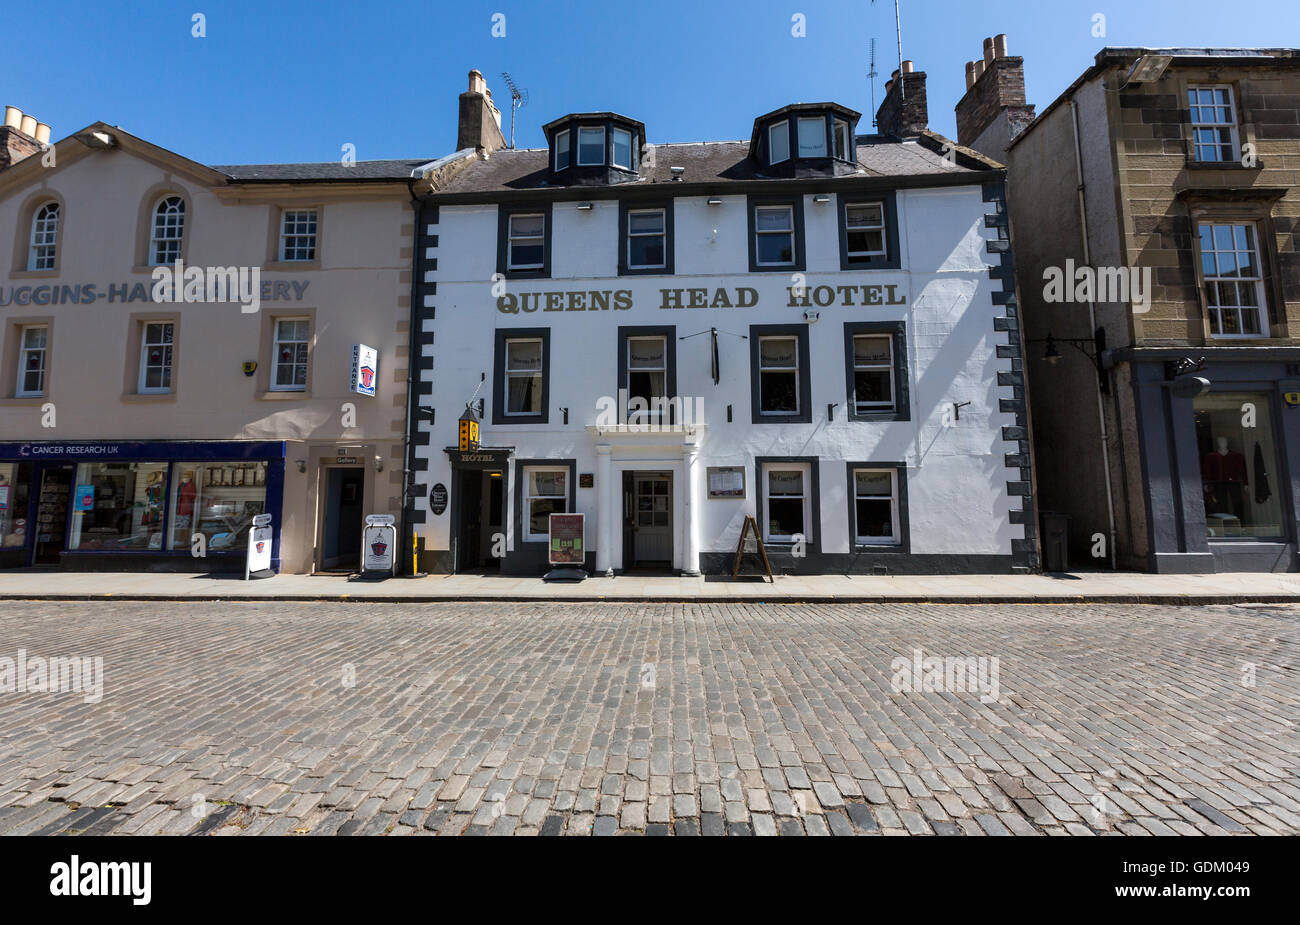 Queens Head Hotel in Kelso, Scottish Borders, Scotland, UK - Stock Image